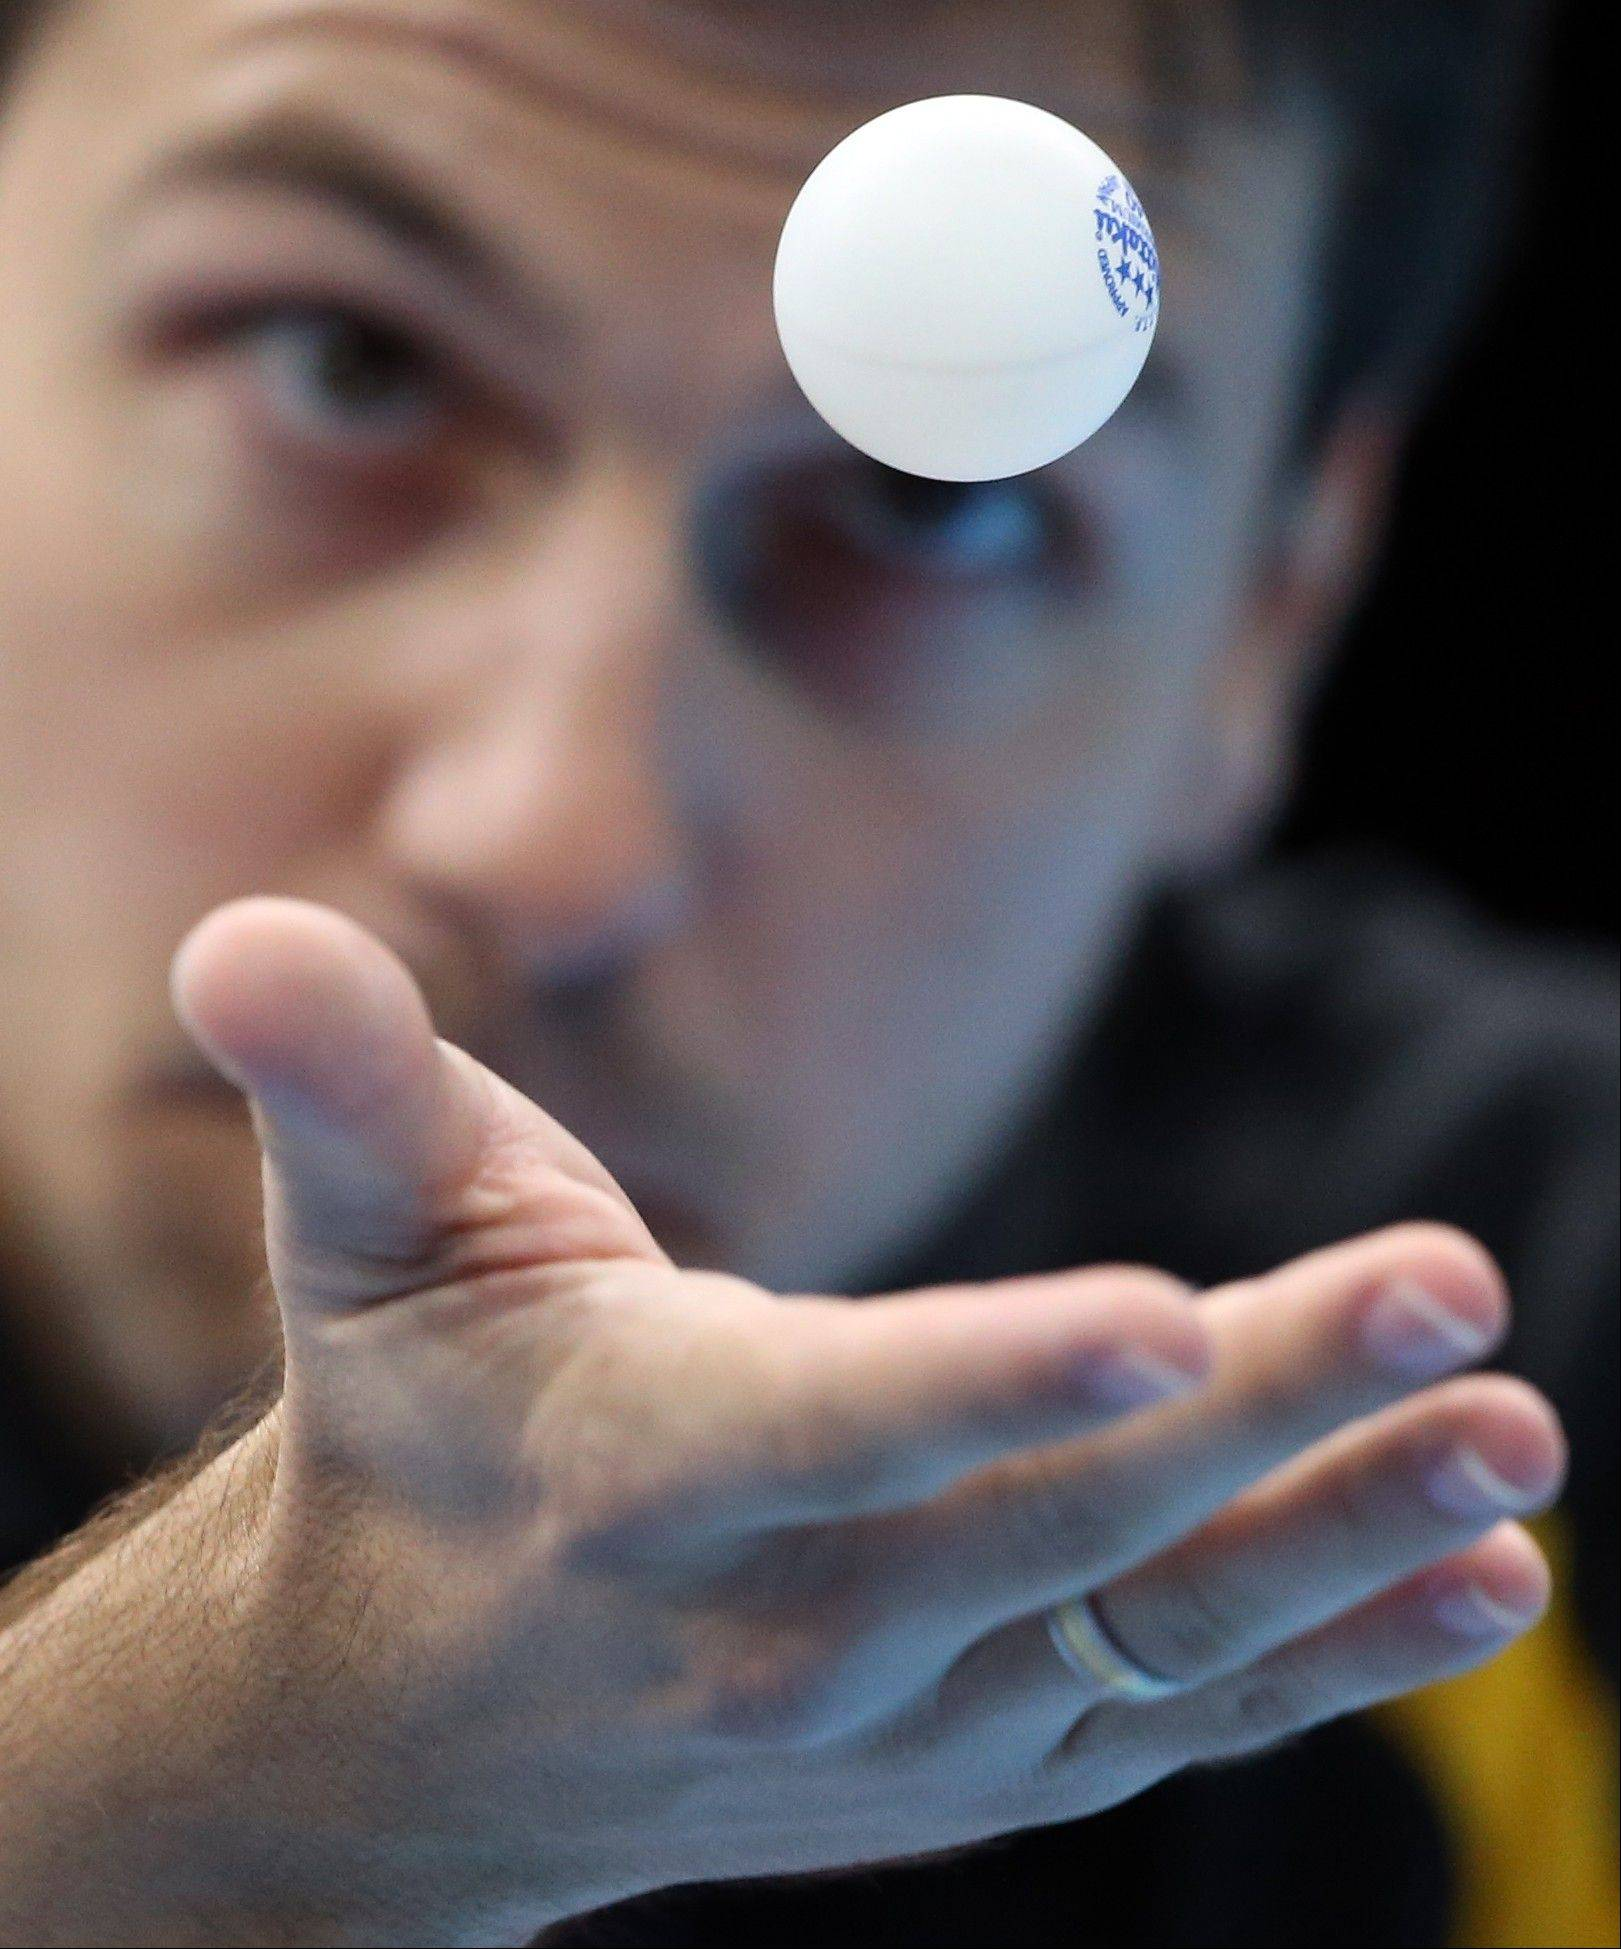 Timo Boll of Germany competes against Leung Chu Yan of Hong Kong in the men's team table tennis bronze medal match at the 2012 Summer Olympics, Wednesday, Aug. 8, 2012, in London.